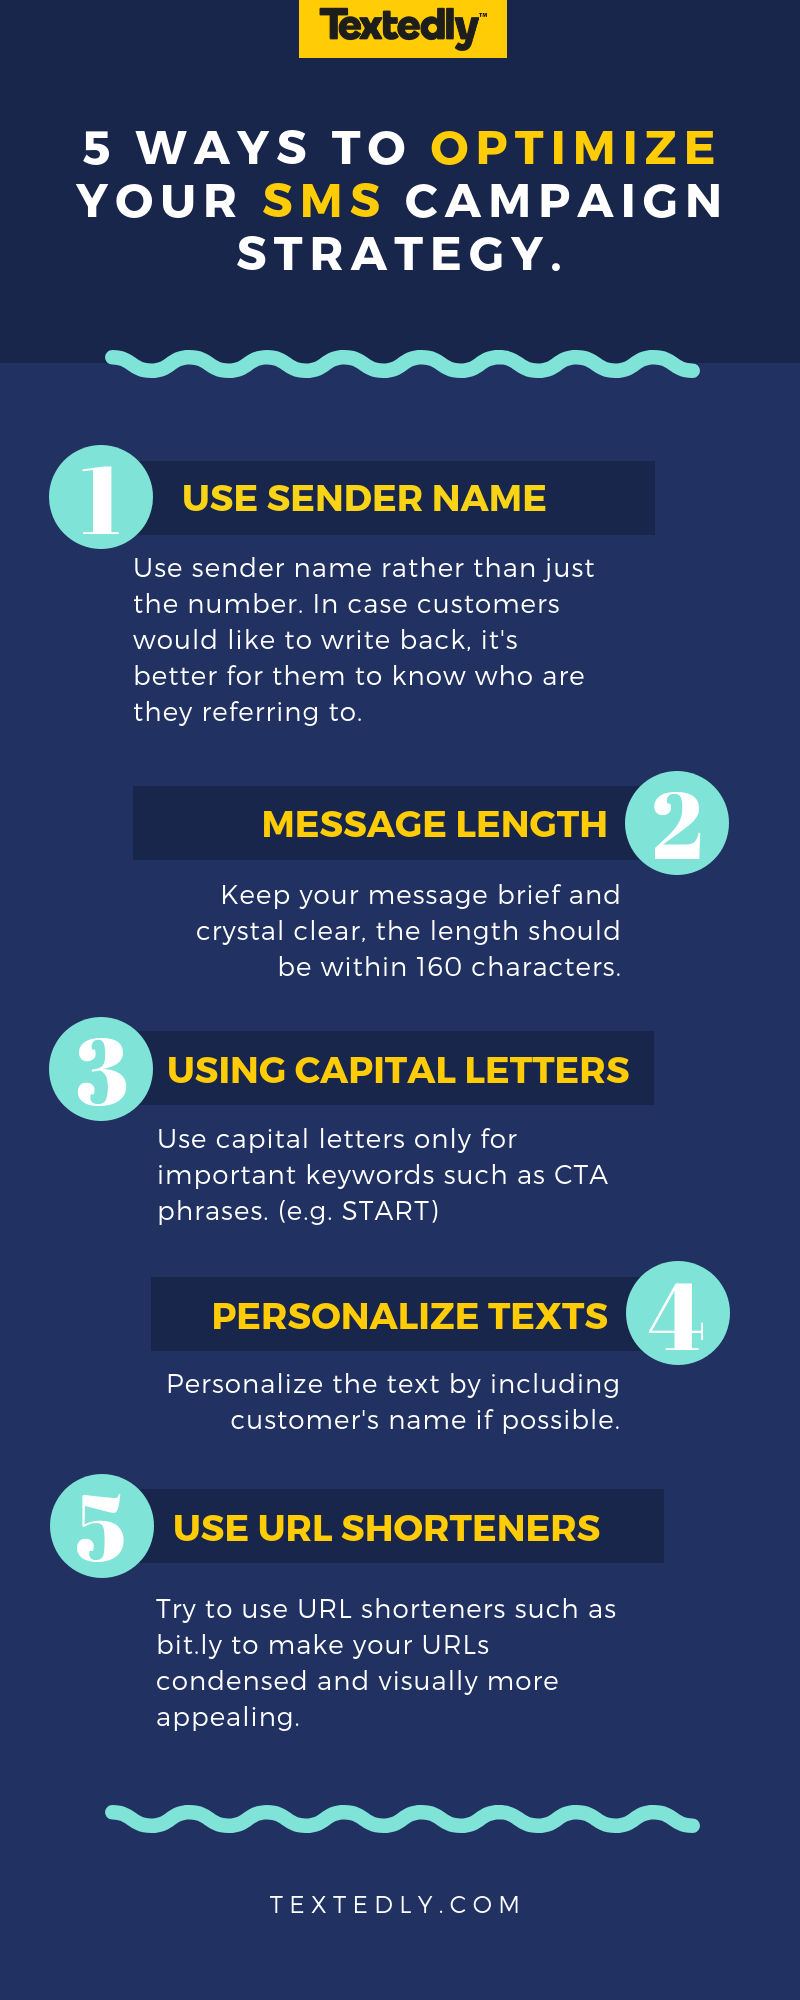 SMS campaign strategy optimization